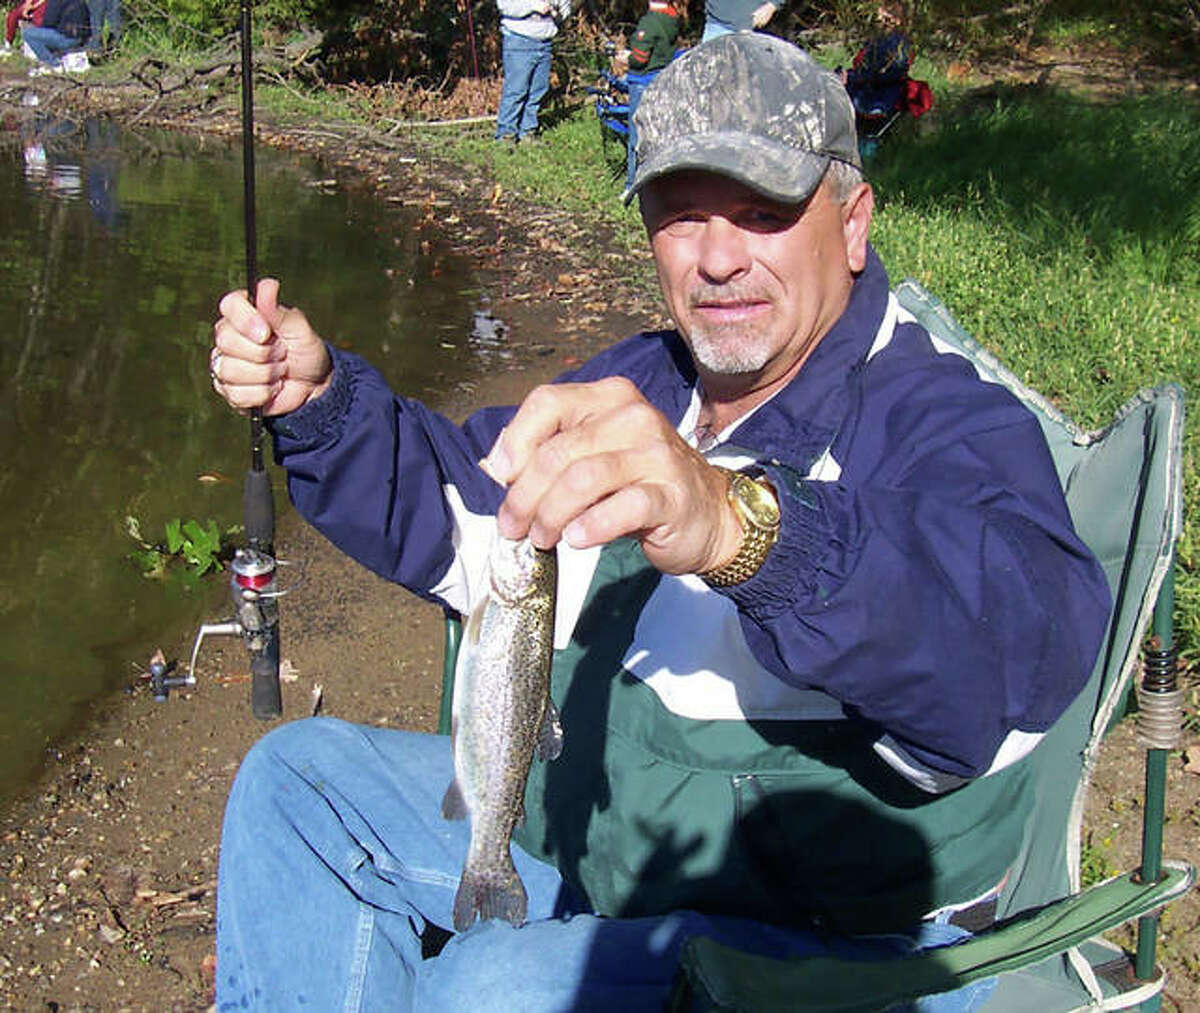 The annual Illinois Catchable Trout Season, opening Oct. 17, offers anglers an opportunity to catch fish normally not available in this state. Once again, this year's program offers a special early opportunity for fly fishing enthusiasts.